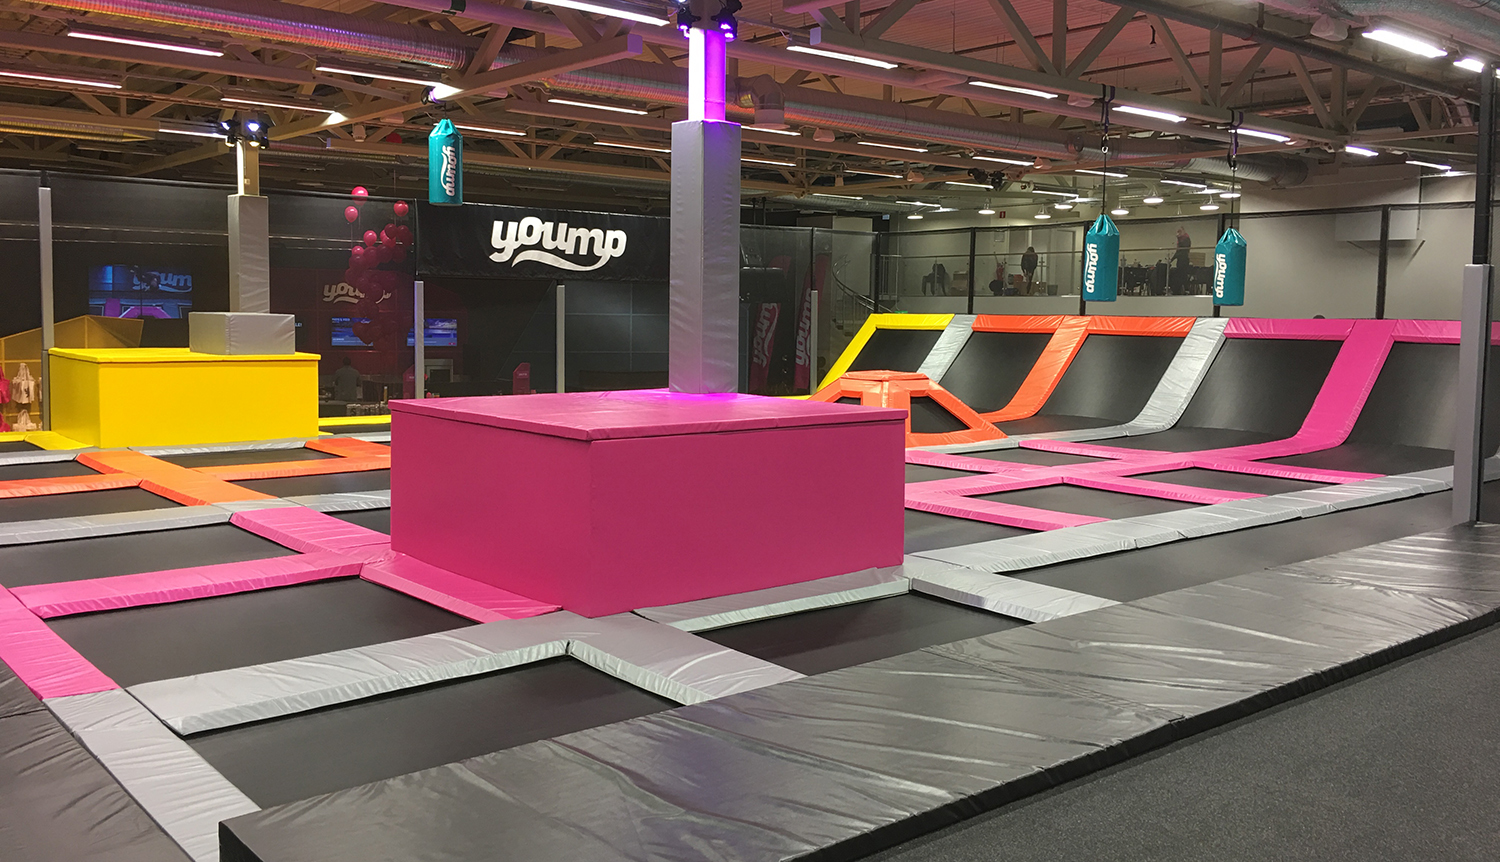 yoump trampoliner